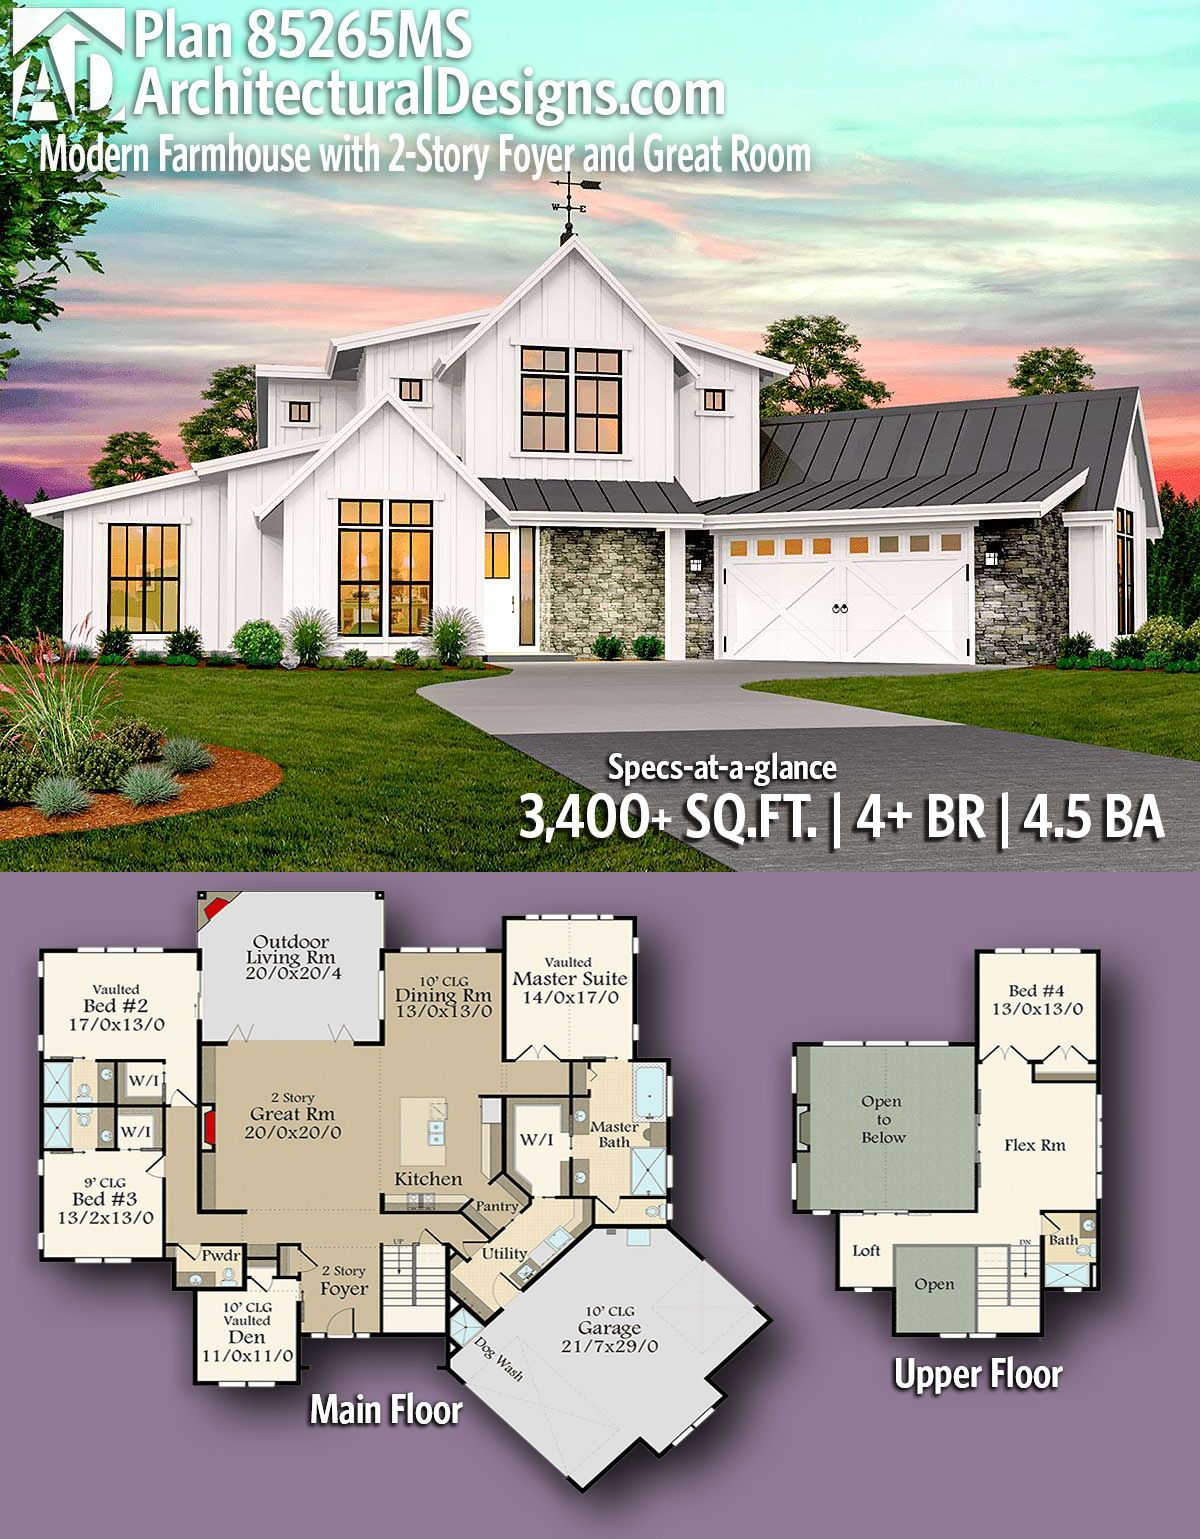 Plan 85265ms Modern Farmhouse With 2 Story Foyer And Great Room In 2020 Modern Farmhouse Plans Farmhouse Plans House Plans